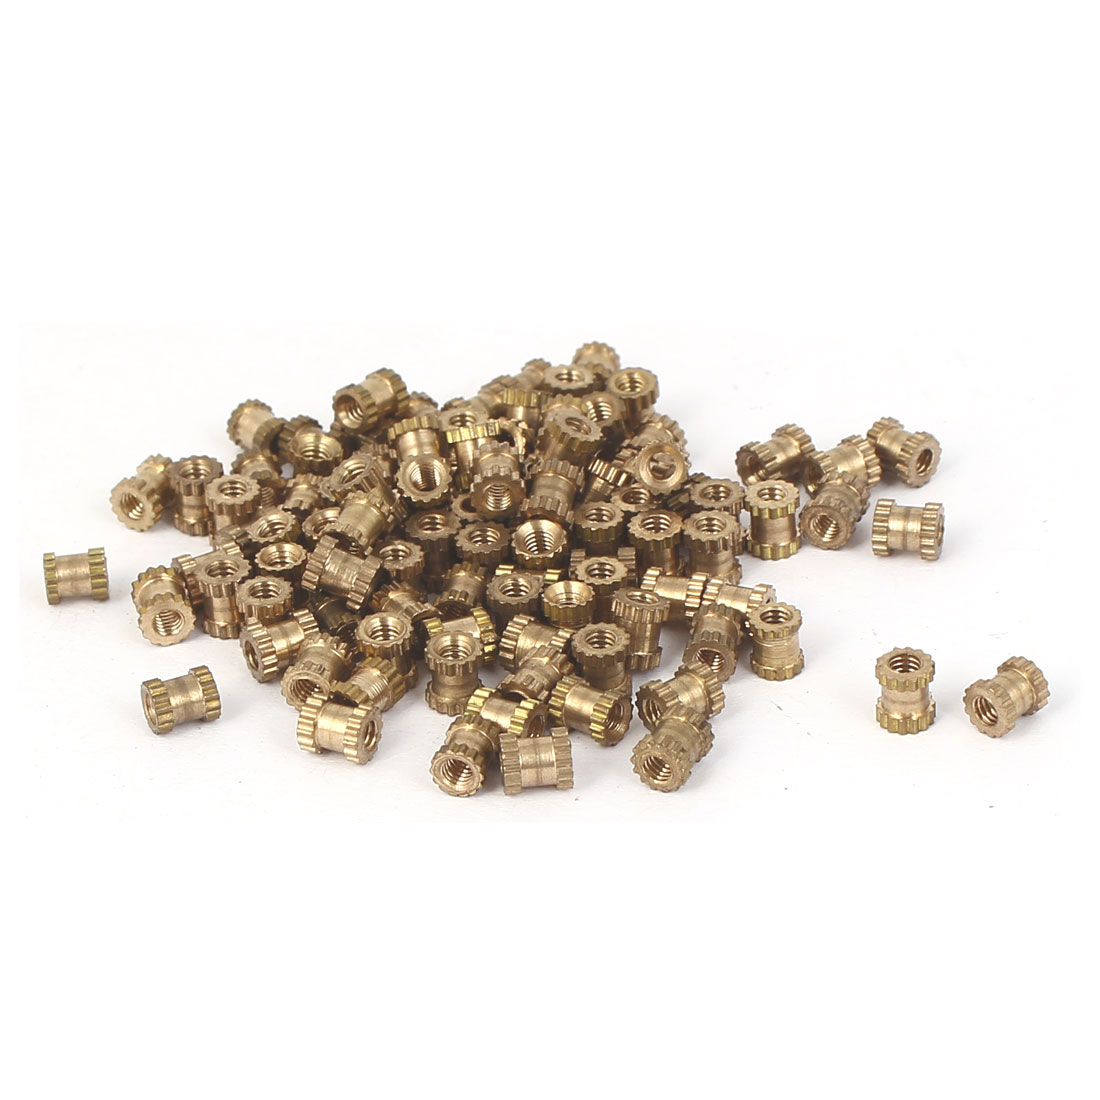 M2x4mm 3mm OD Brass Embedded Knurled Insert Thumb Nuts 100pcs